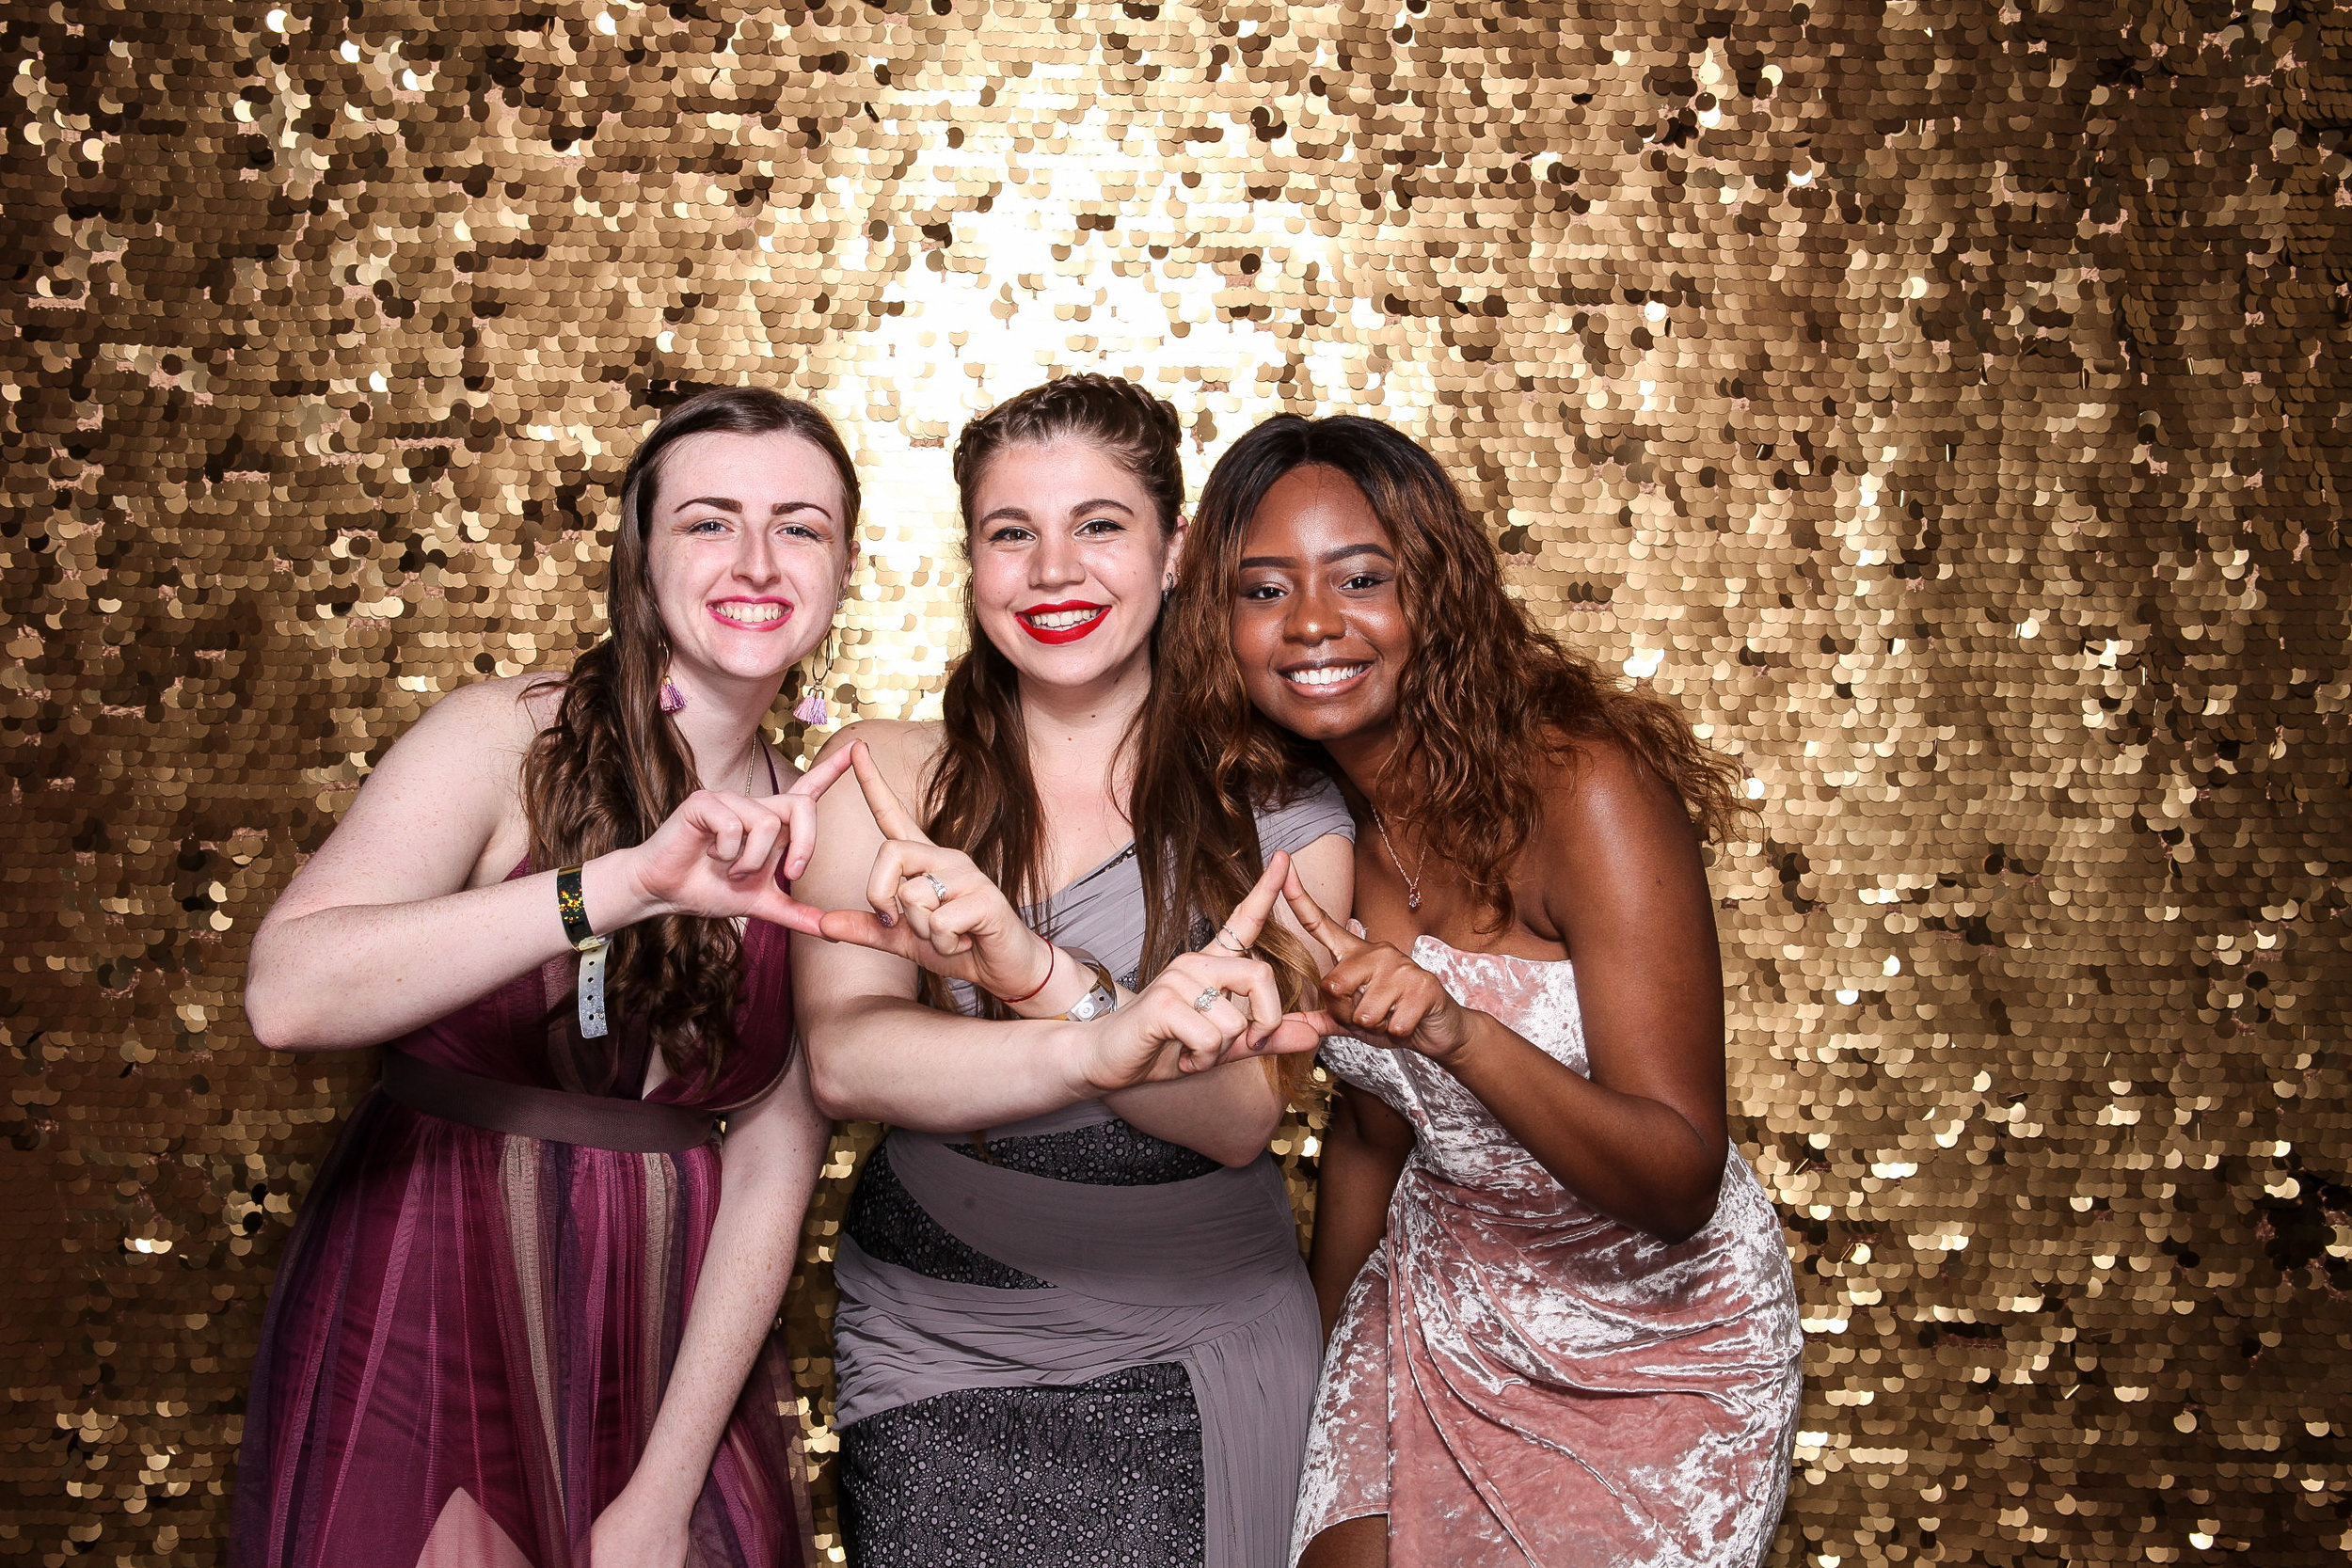 20190503_Adelphi_Senior_Formal-172.jpg